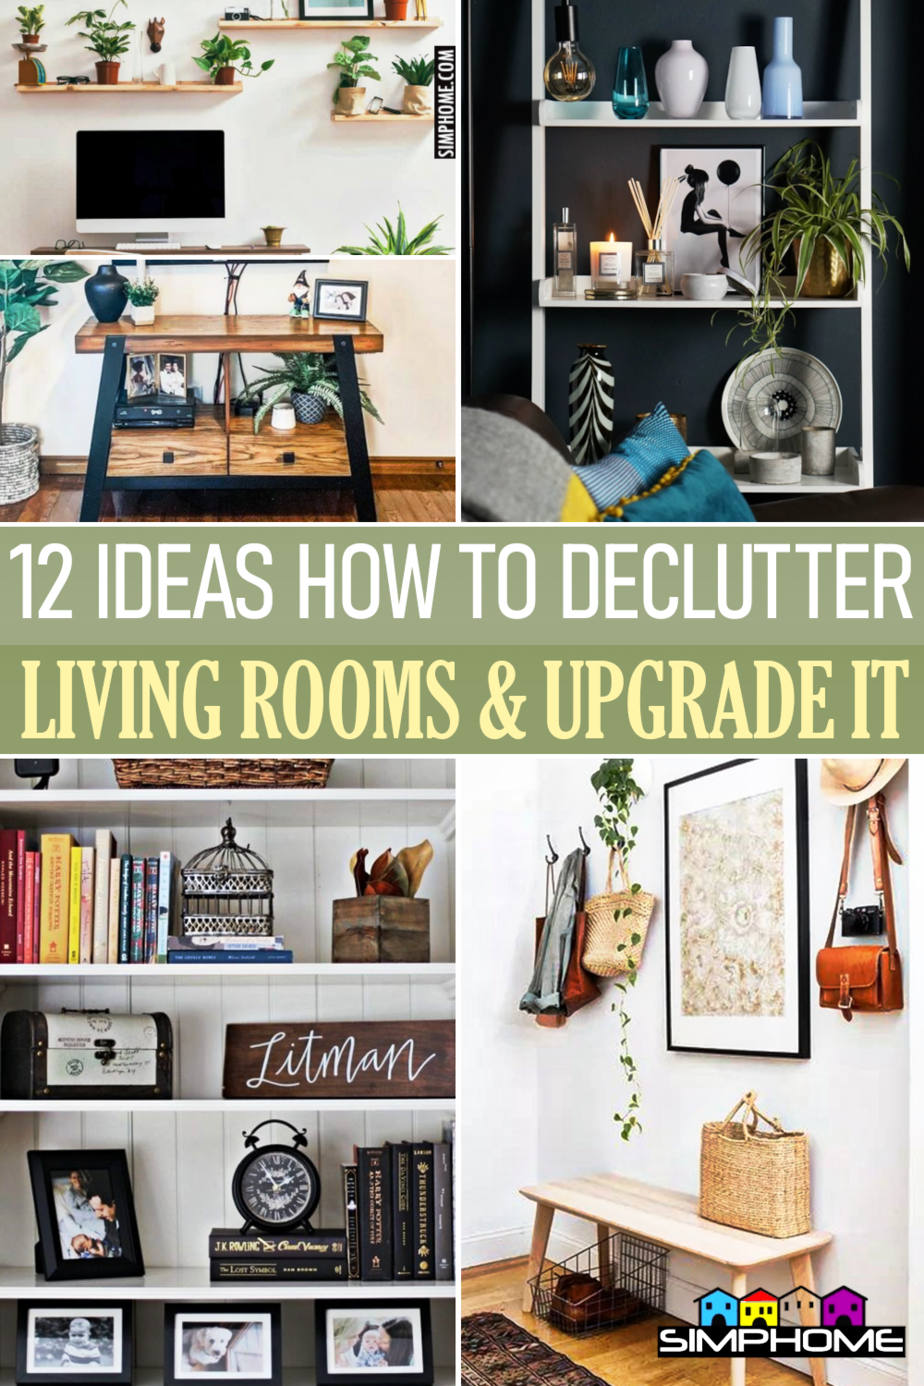 12 ideas how to declutter your living room via Simphome.comFeatured